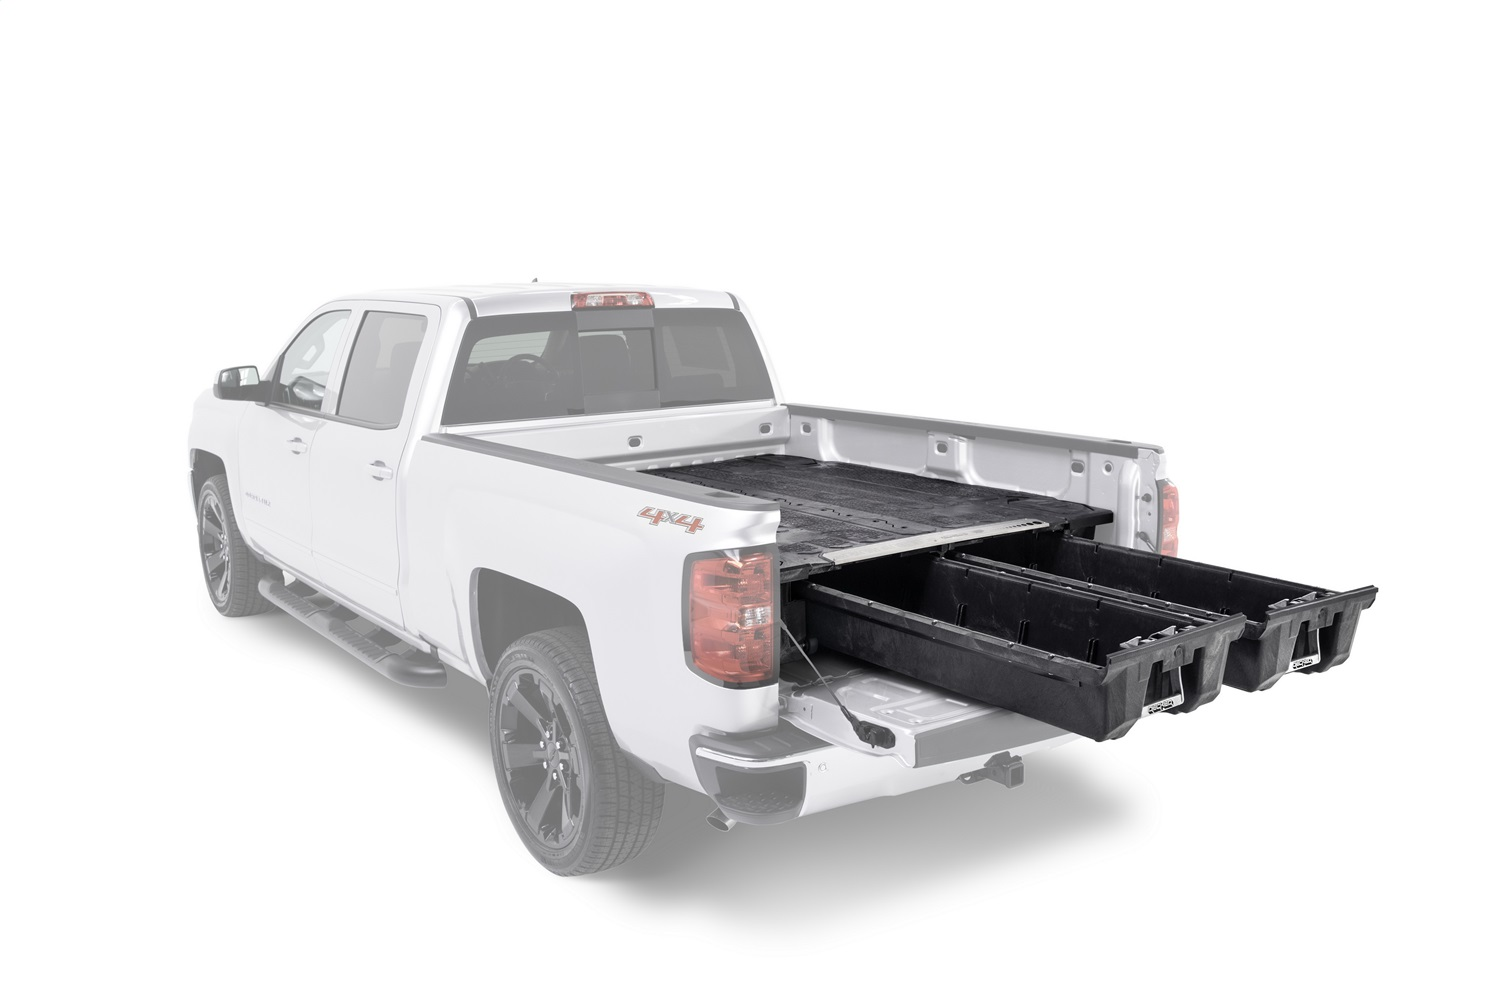 DECKED Truck Bed Storage System, 64.54 in., Made Of High Density Polyethylene, Stainless Steel Hardware, Features Cast Aluminum Handles / Galvanized Steel Subframe